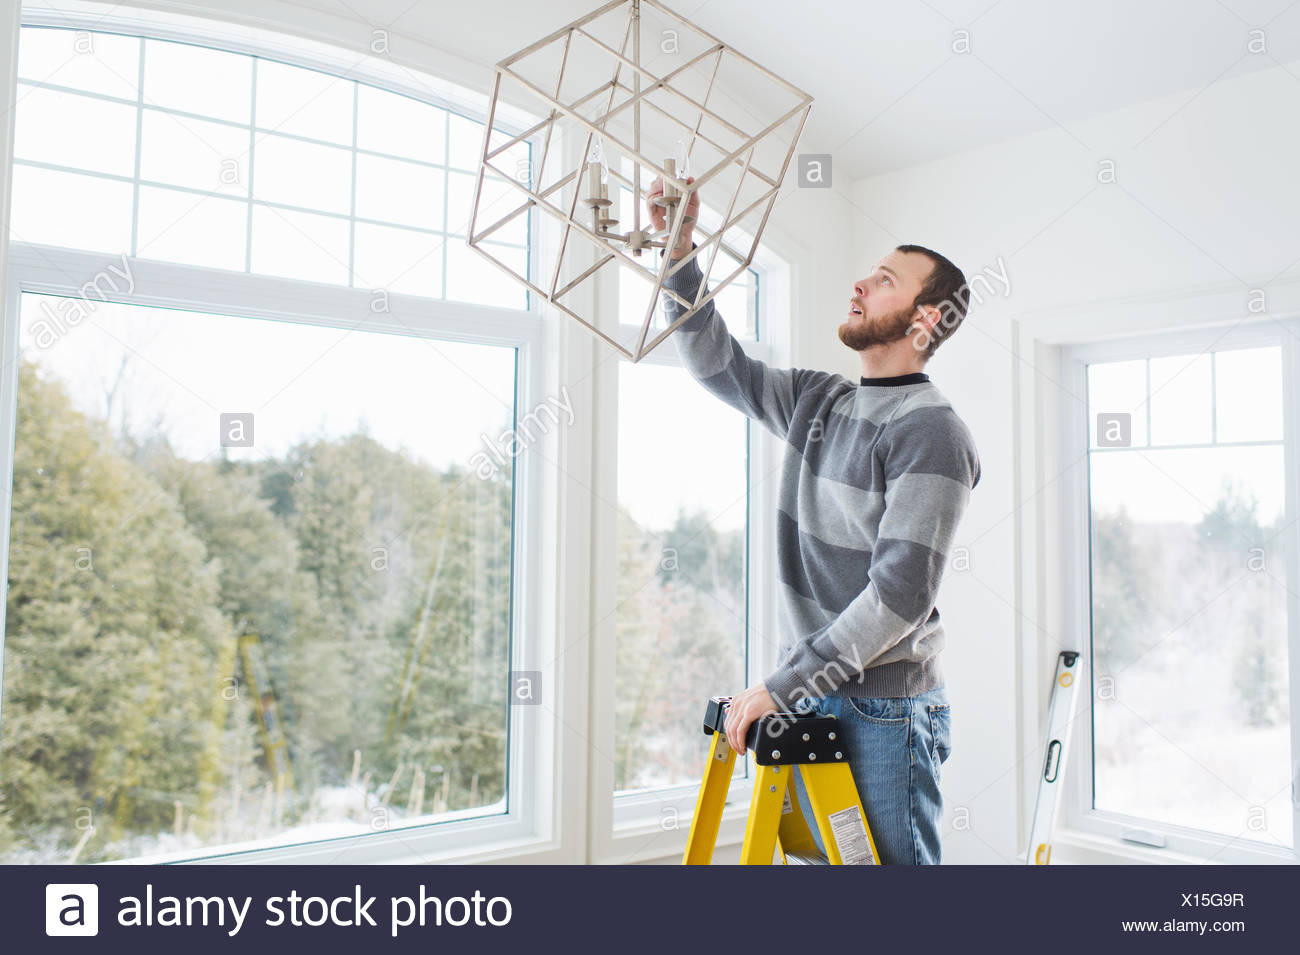 Young man installing ceiling light - Stock Image